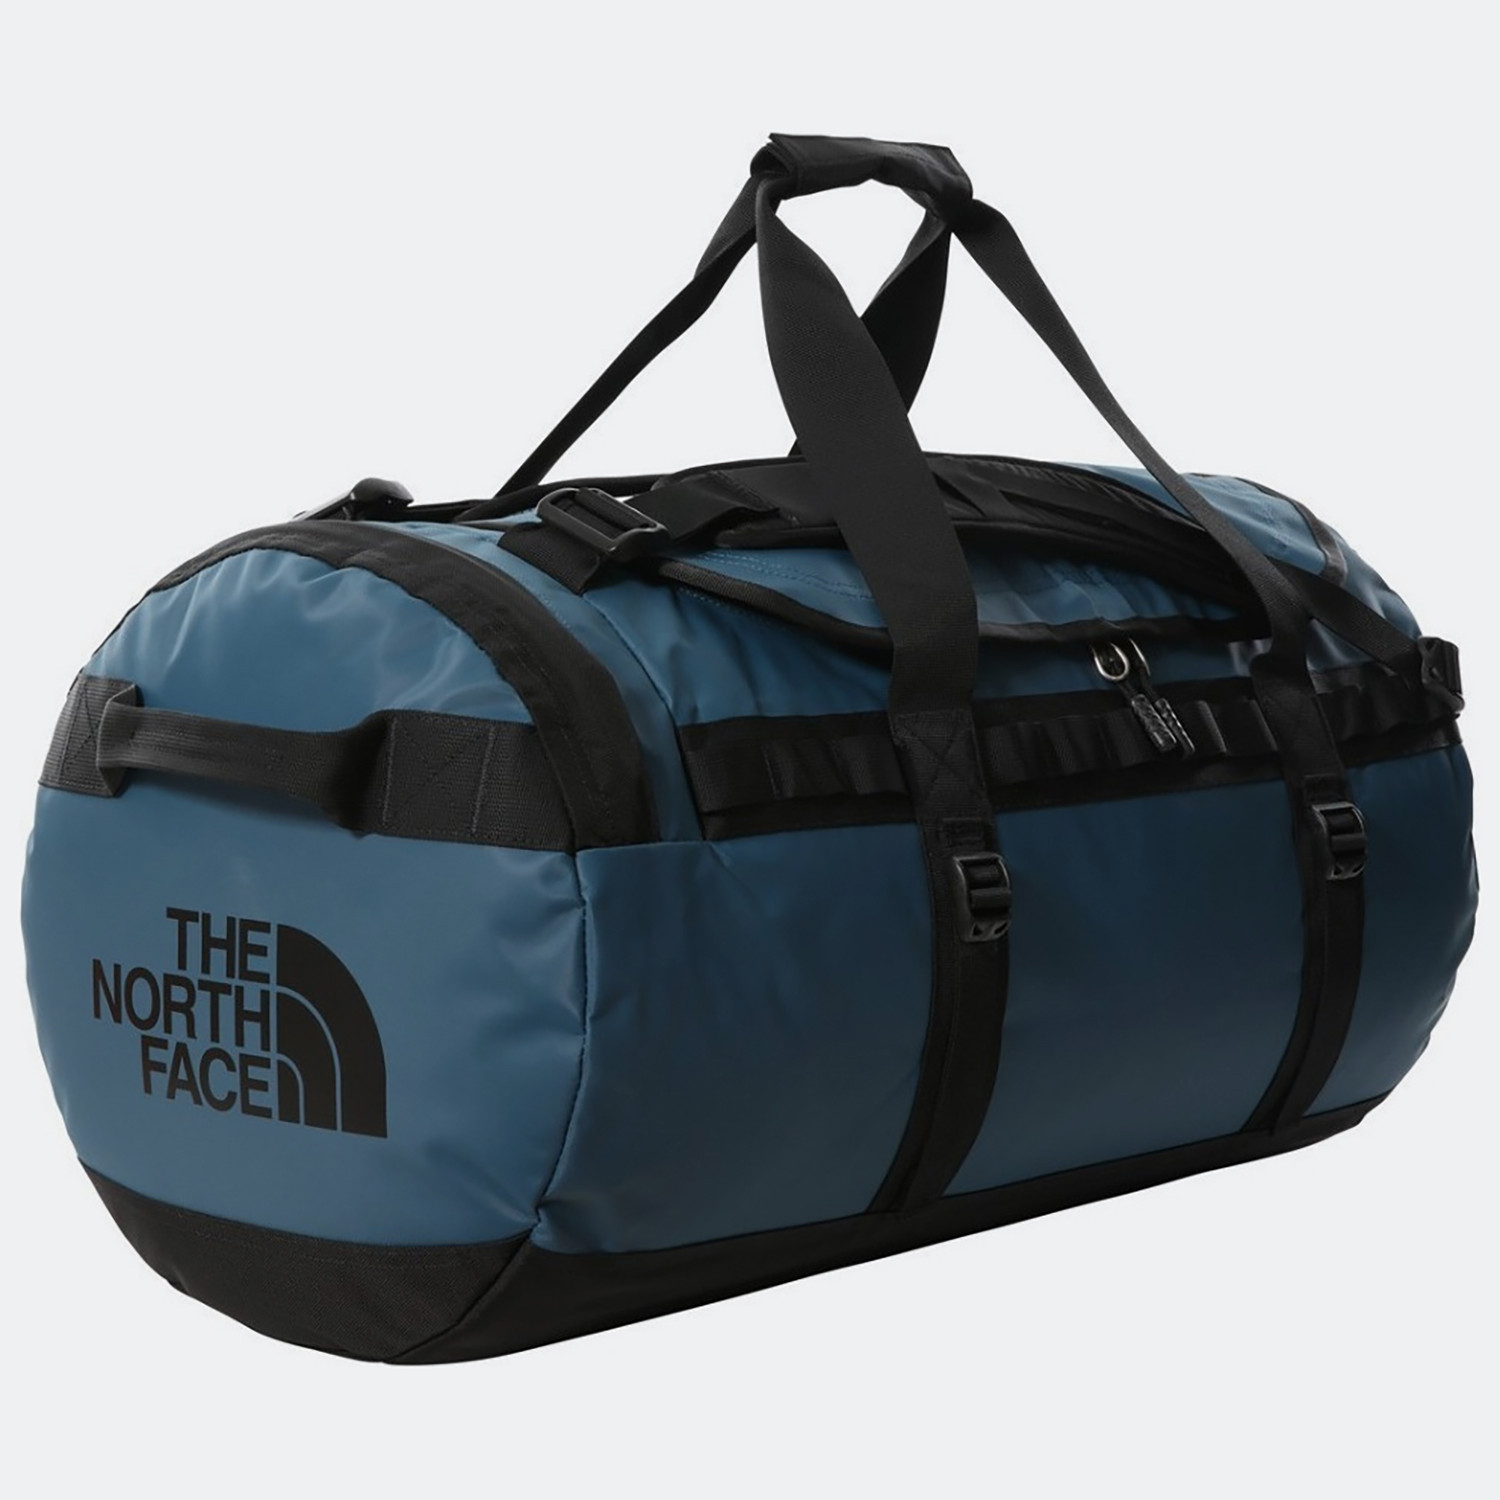 THE NORTH FACE Base Camp Duffel Unisex Τσάντα Ταξιδιού 71L (9000073499_51569)